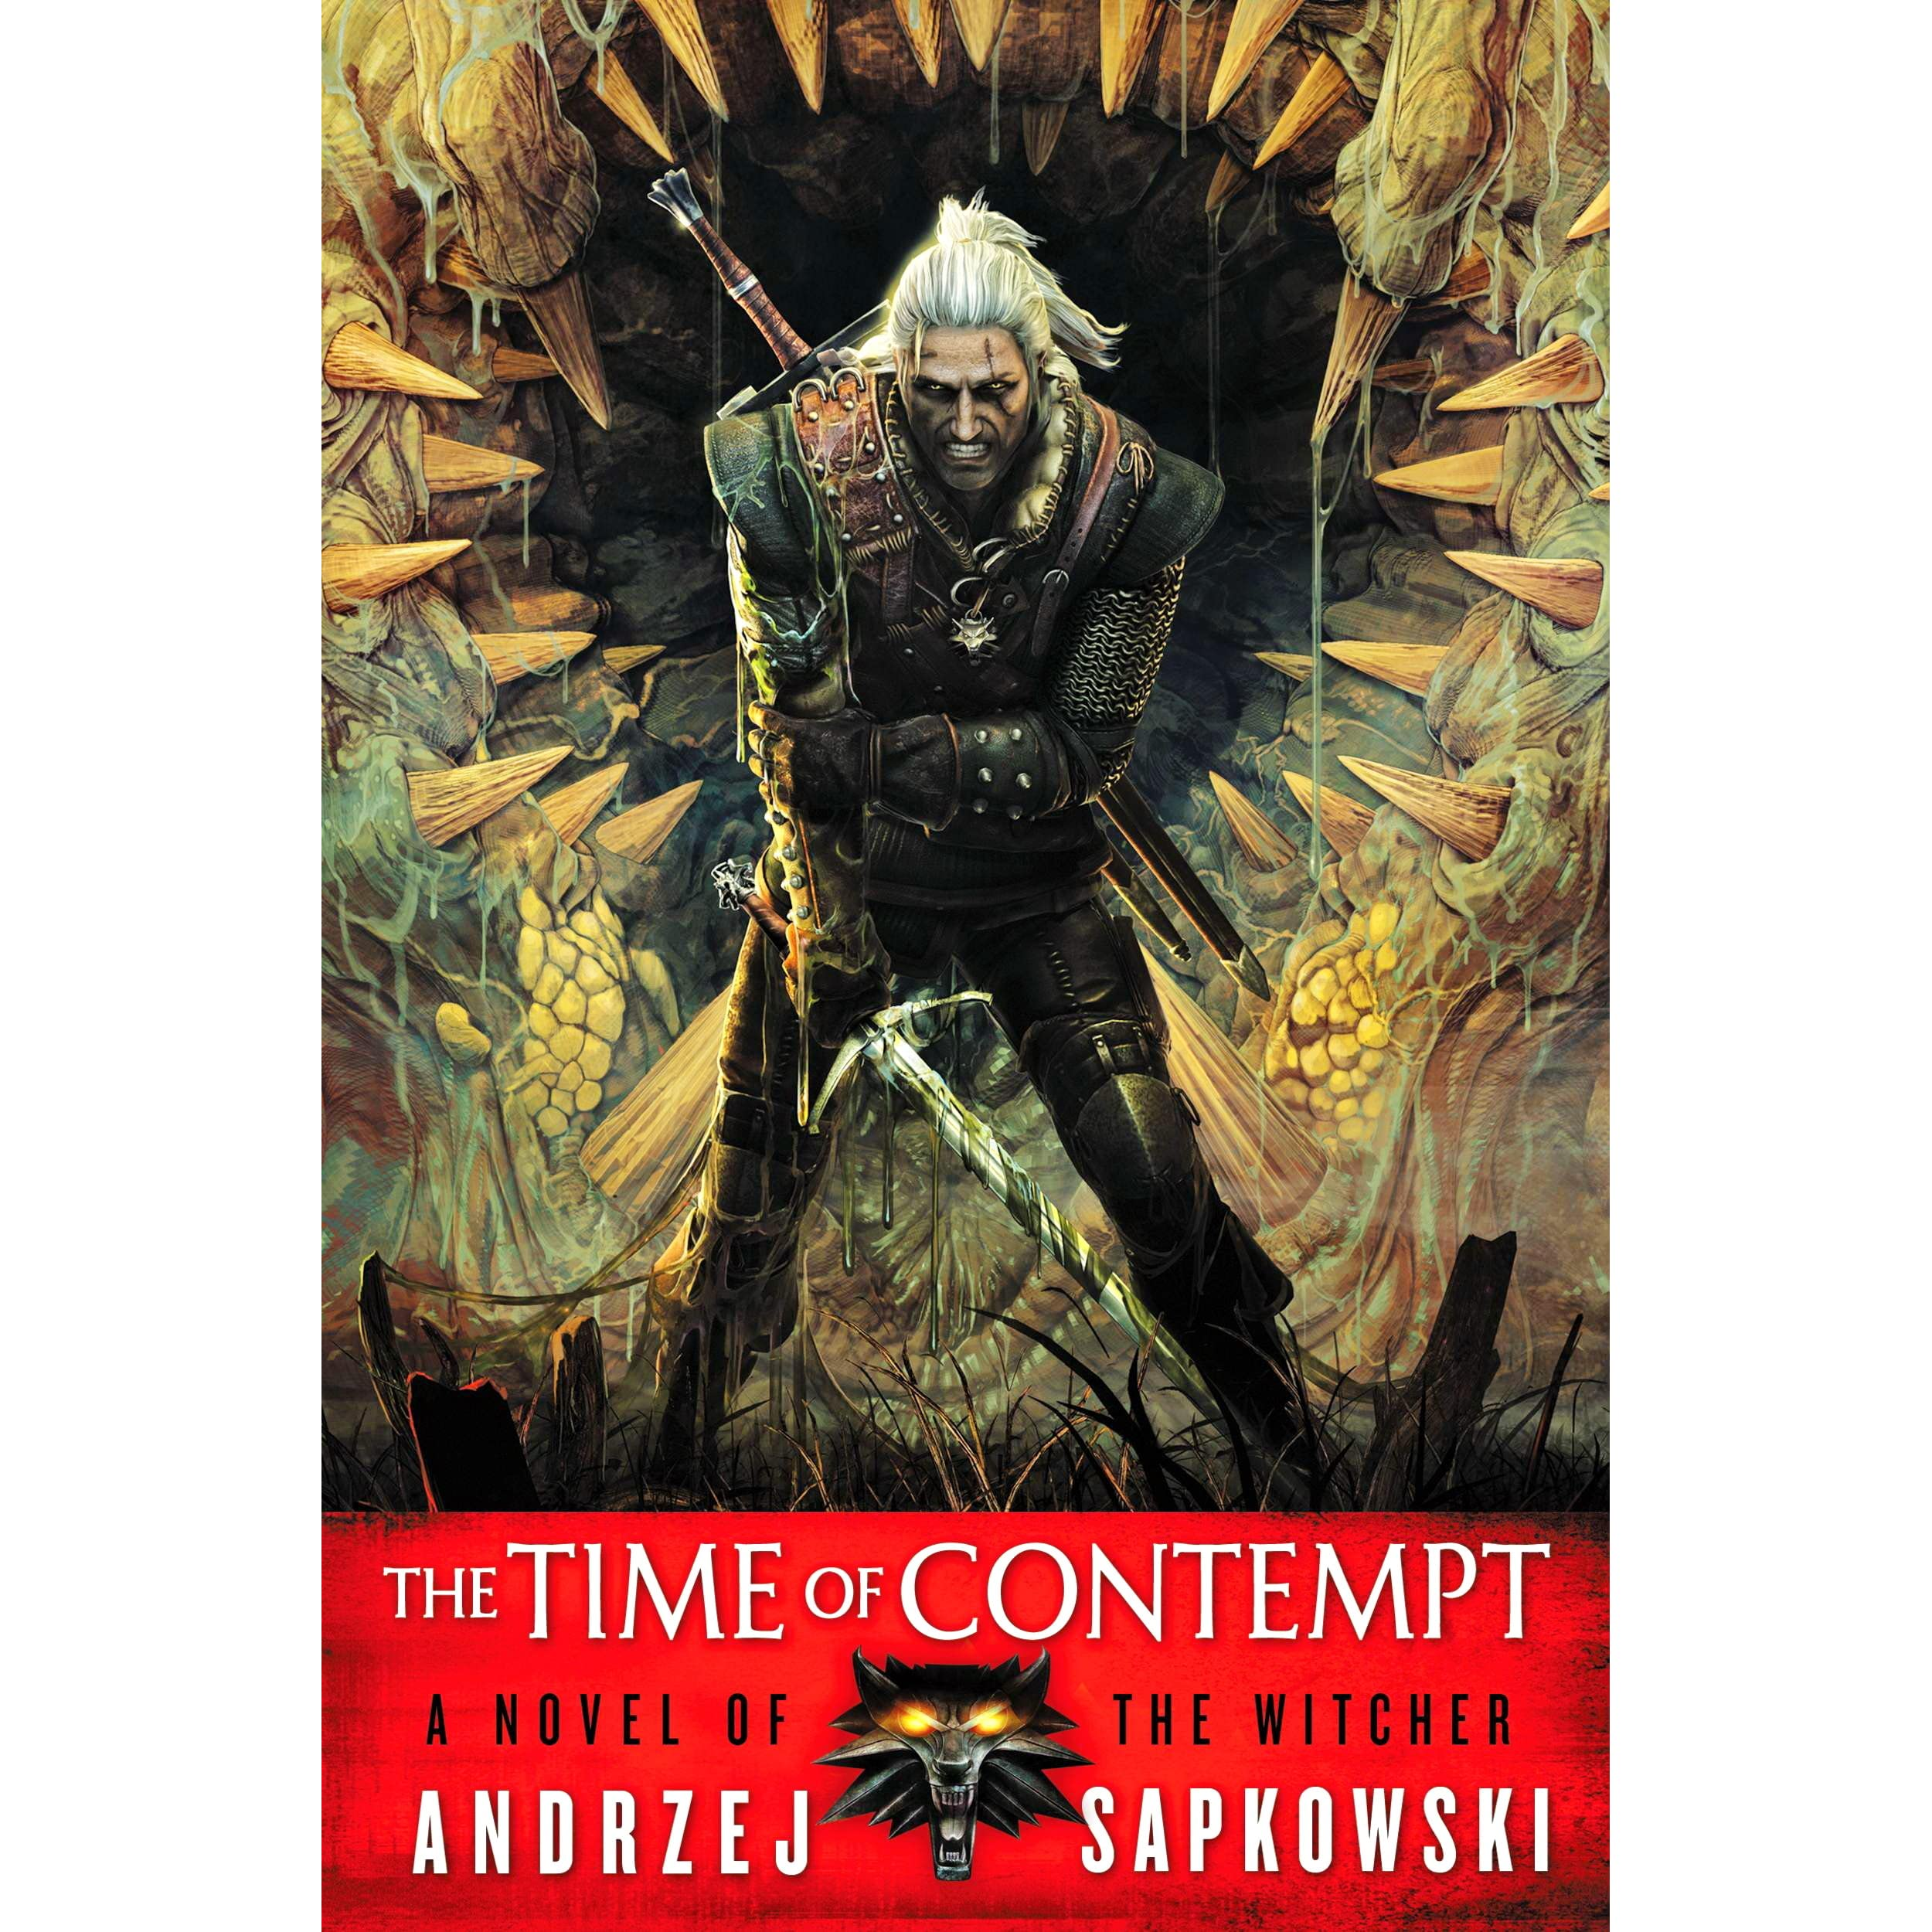 The Time of Contempt (The Witcher, #2) by Andrzej Sapkowski